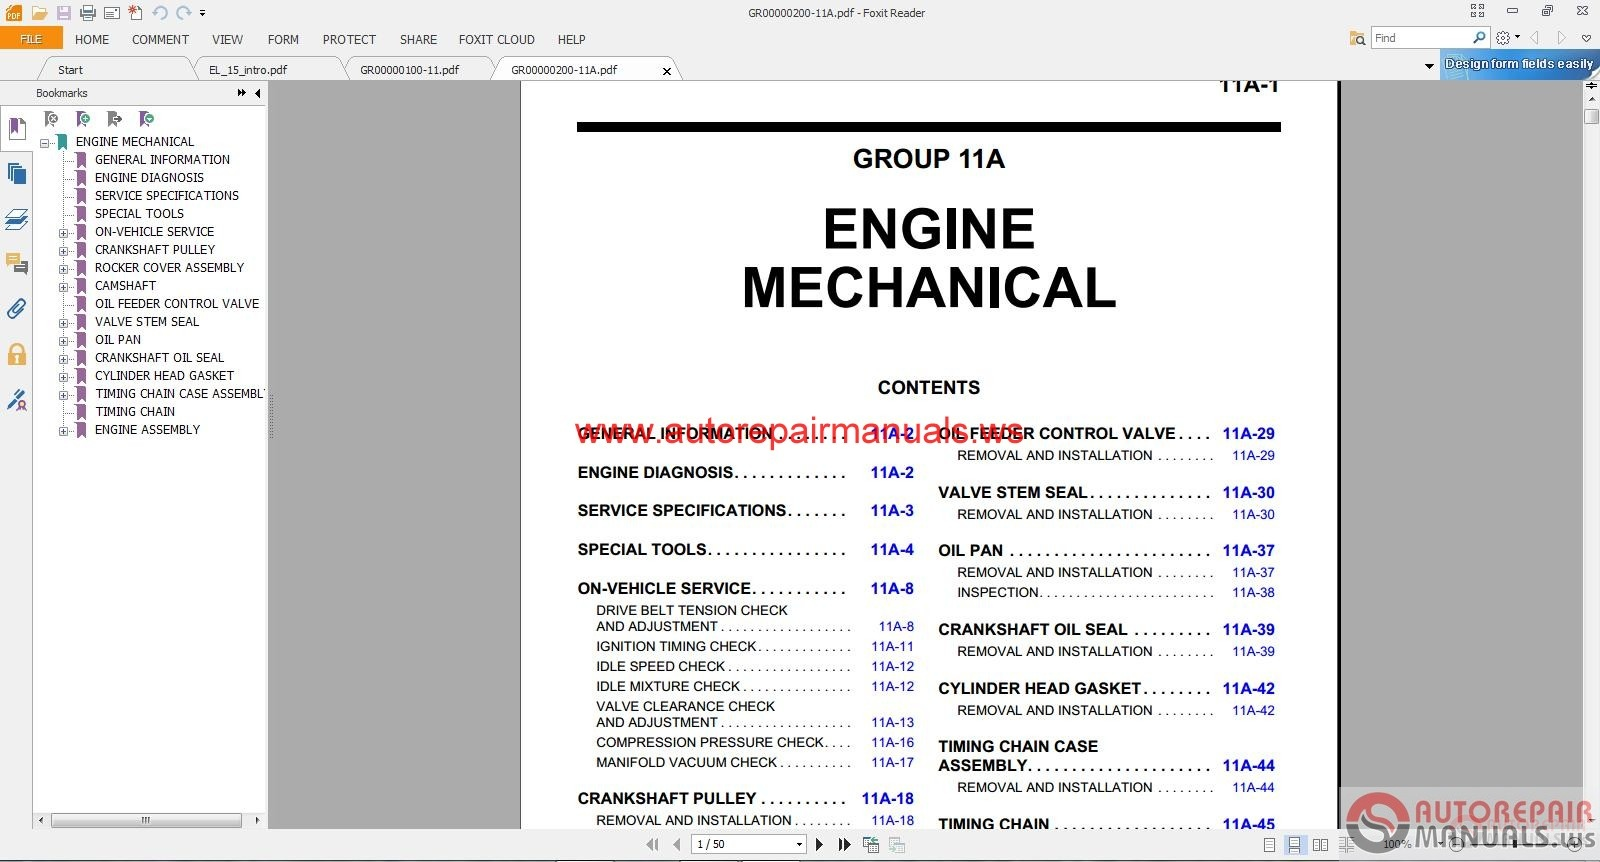 Mitsubishi_Mirage_2015_Workshop_Manual3 mitsubishi mirage 2015 workshop manual auto repair manual forum mitsubishi lancer wiring diagram free download at alyssarenee.co